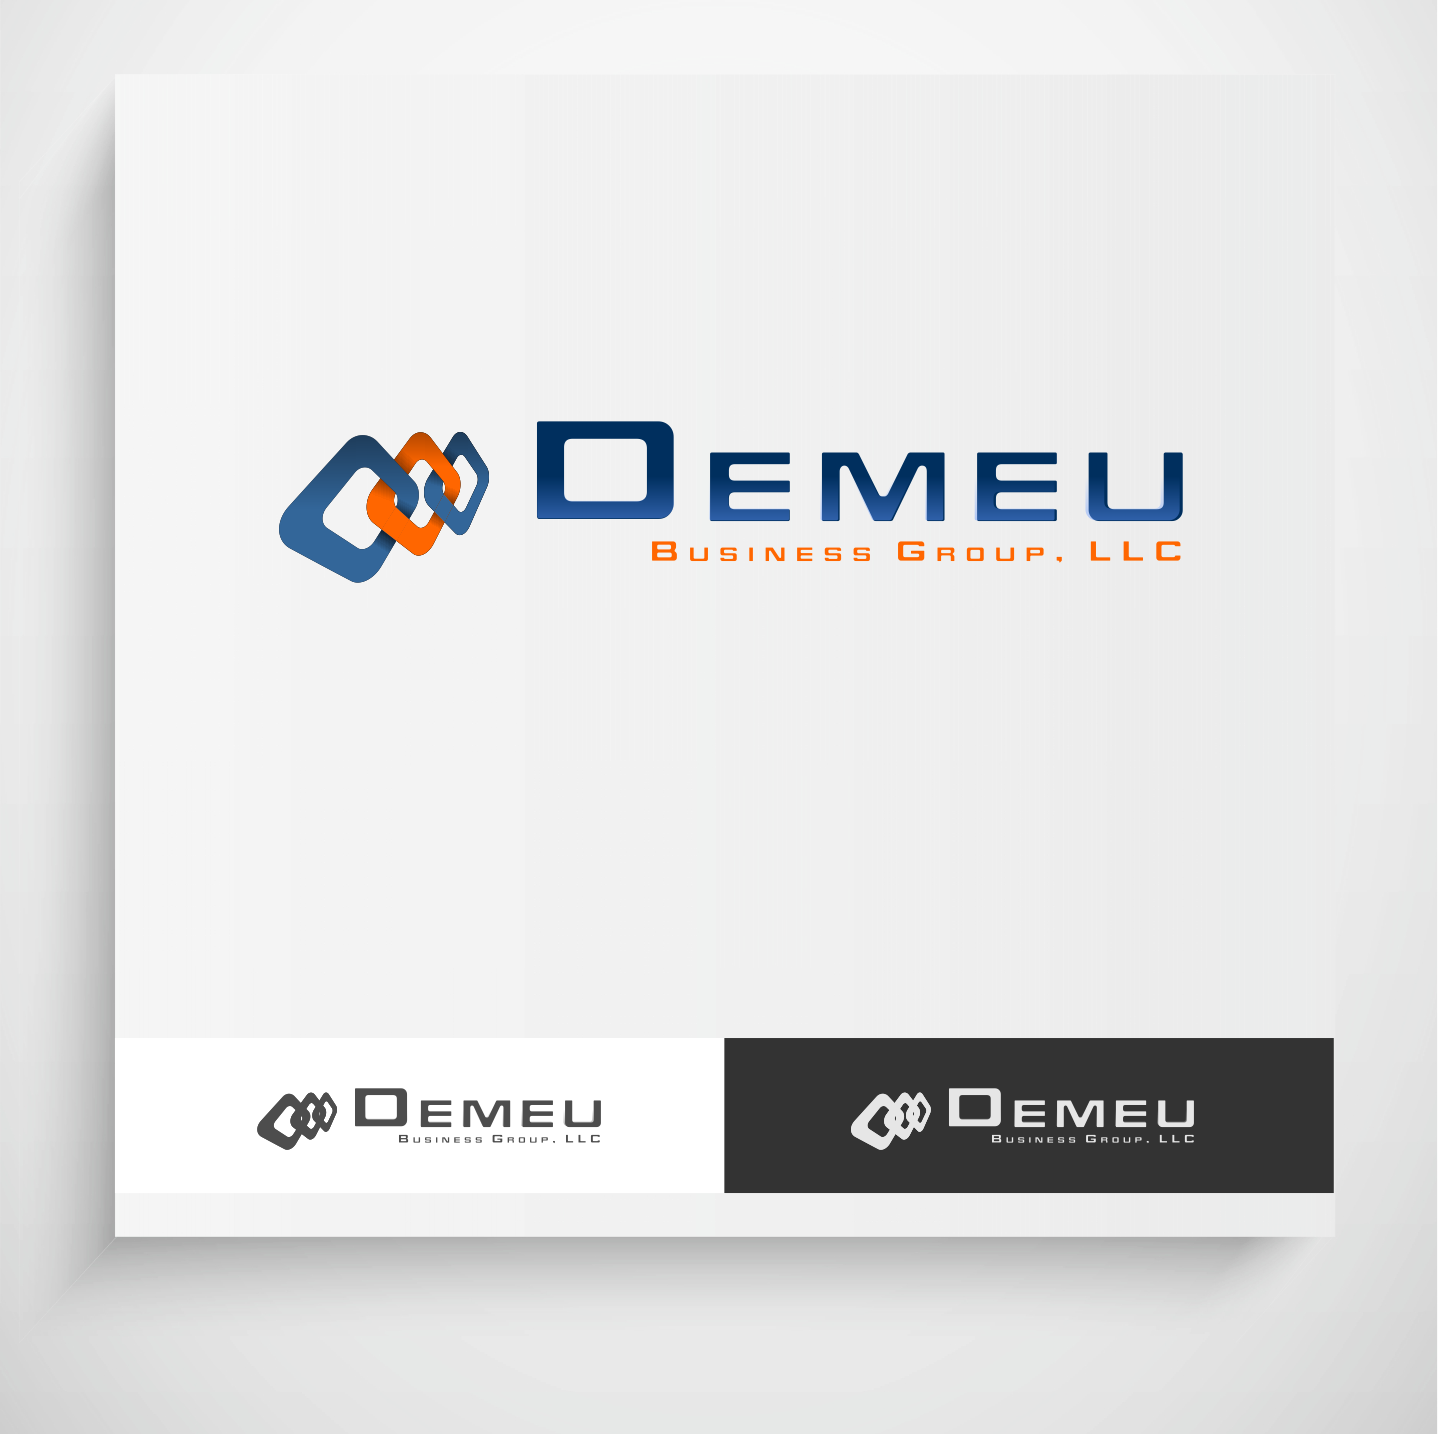 Logo Design by Krzysztof Mokanek - Entry No. 75 in the Logo Design Contest Captivating Logo Design for DEMEU Business Group.